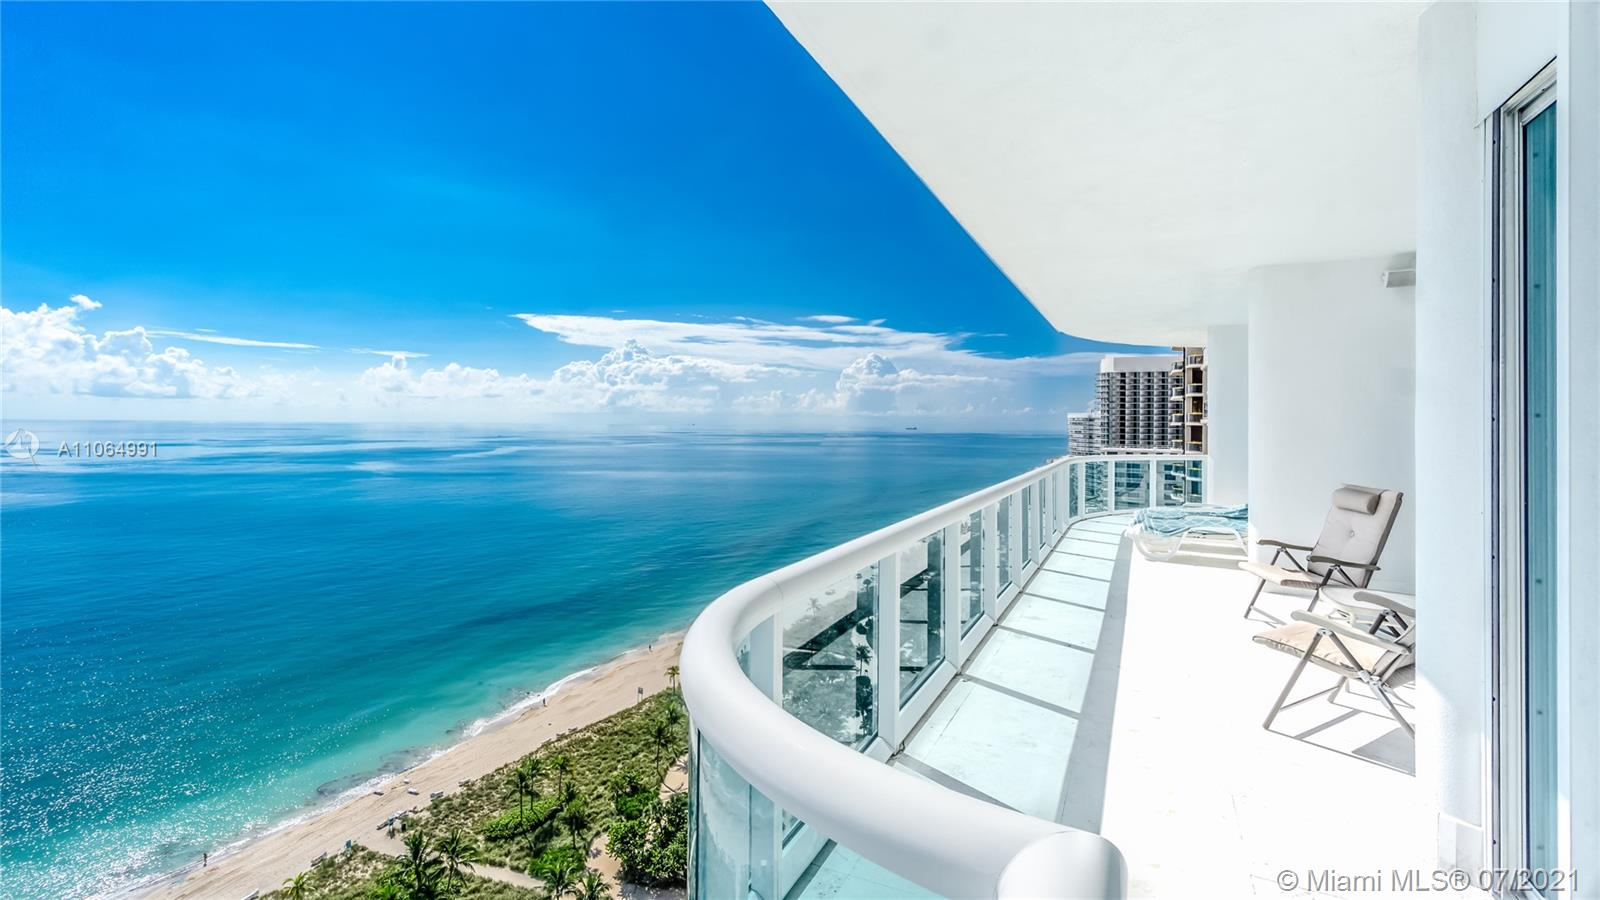 Incredible opportunity to own one of the best penthouses in Bal Harbour. Located in the exclusive Bal Harbour Palace, this SE corner unit has some of the most unobstructed and dramatic direct ocean and intracoastal views around. Enter from your private elevator and foyer into this distinctive 3 bedroom, 3.5 bathroom with 3,690 sqft impeccably finished with custom built-ins, crown moldings, designer kitchen and an enormous terrace that wraps around the entire unit. The Bal Harbour Palace features every amenity from valet parking, swimming pool, tennis courts, spa, beach service, full service restaurant and so much more.  Enjoy bike riding or walking on the board walk directly behind your unit. Walking distance to Bal Harbour Shoppes which is just across the street.